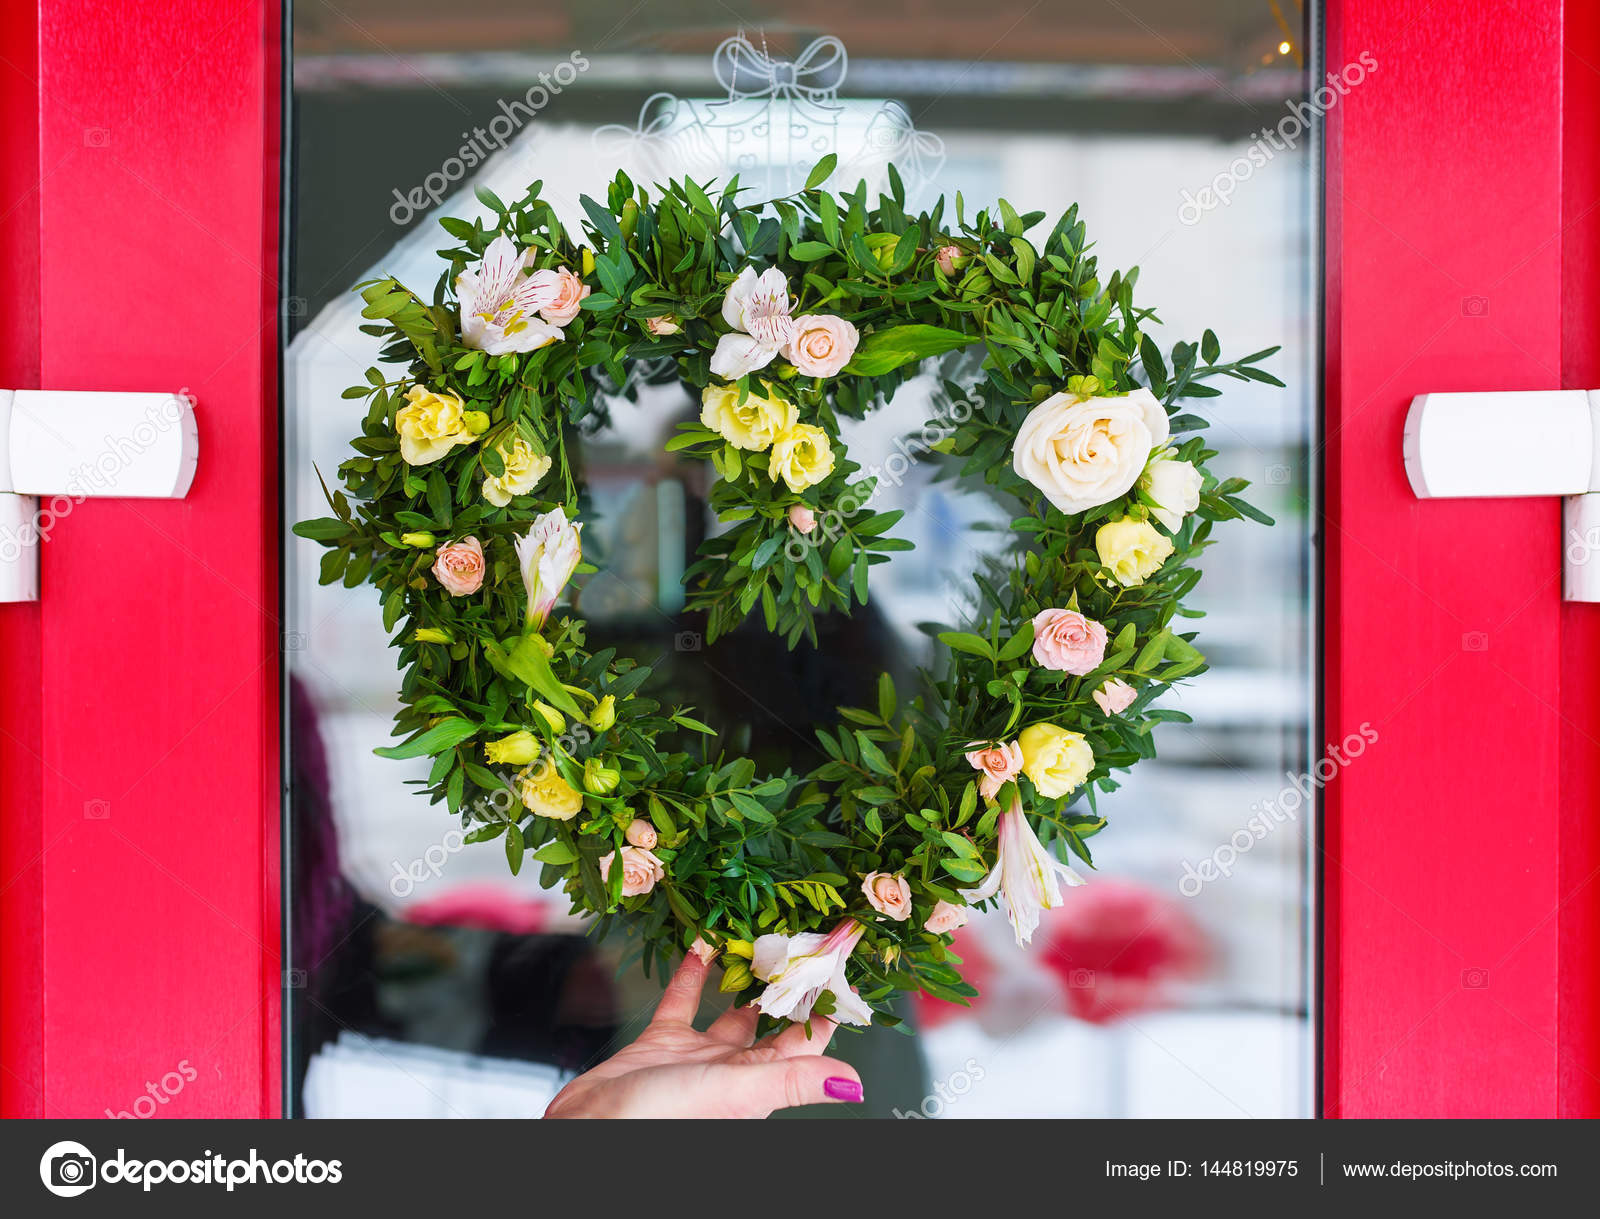 Woman Making Door Wreath With Spring Plants And Flowers Stock